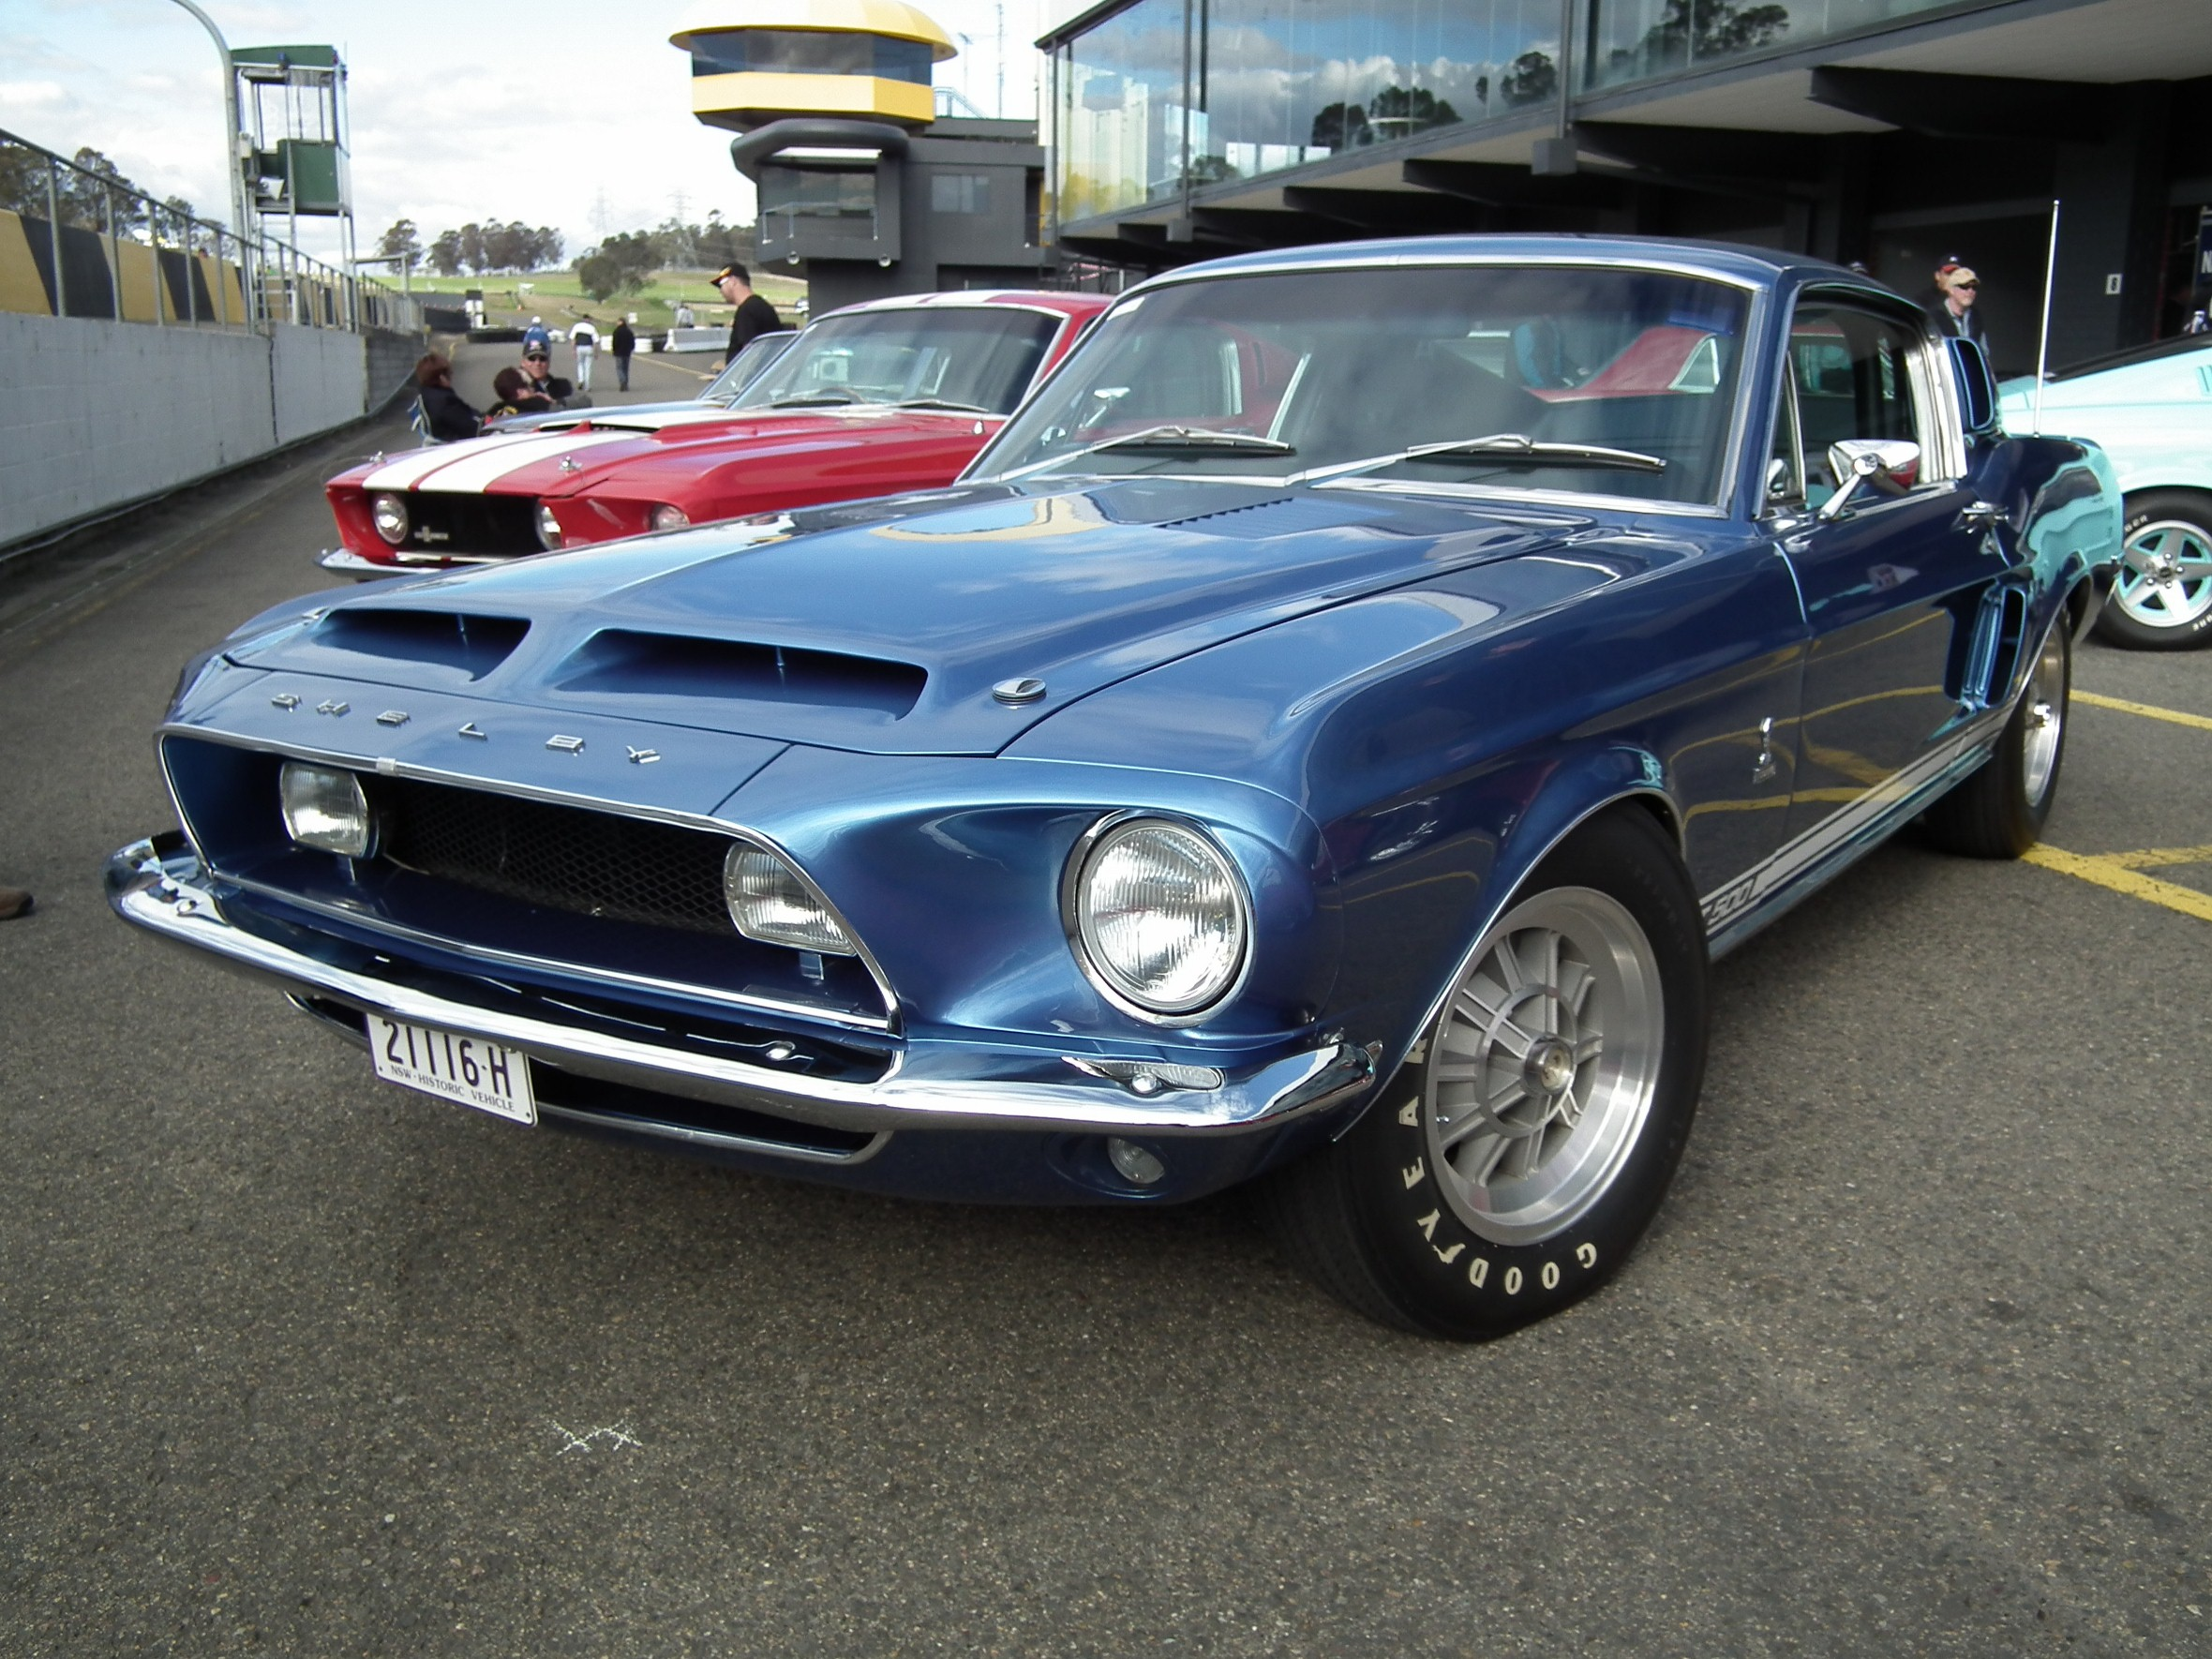 File:1968 Ford Mustang Shelby GT500 coupe (7708130950).jpg - Wikimedia ...